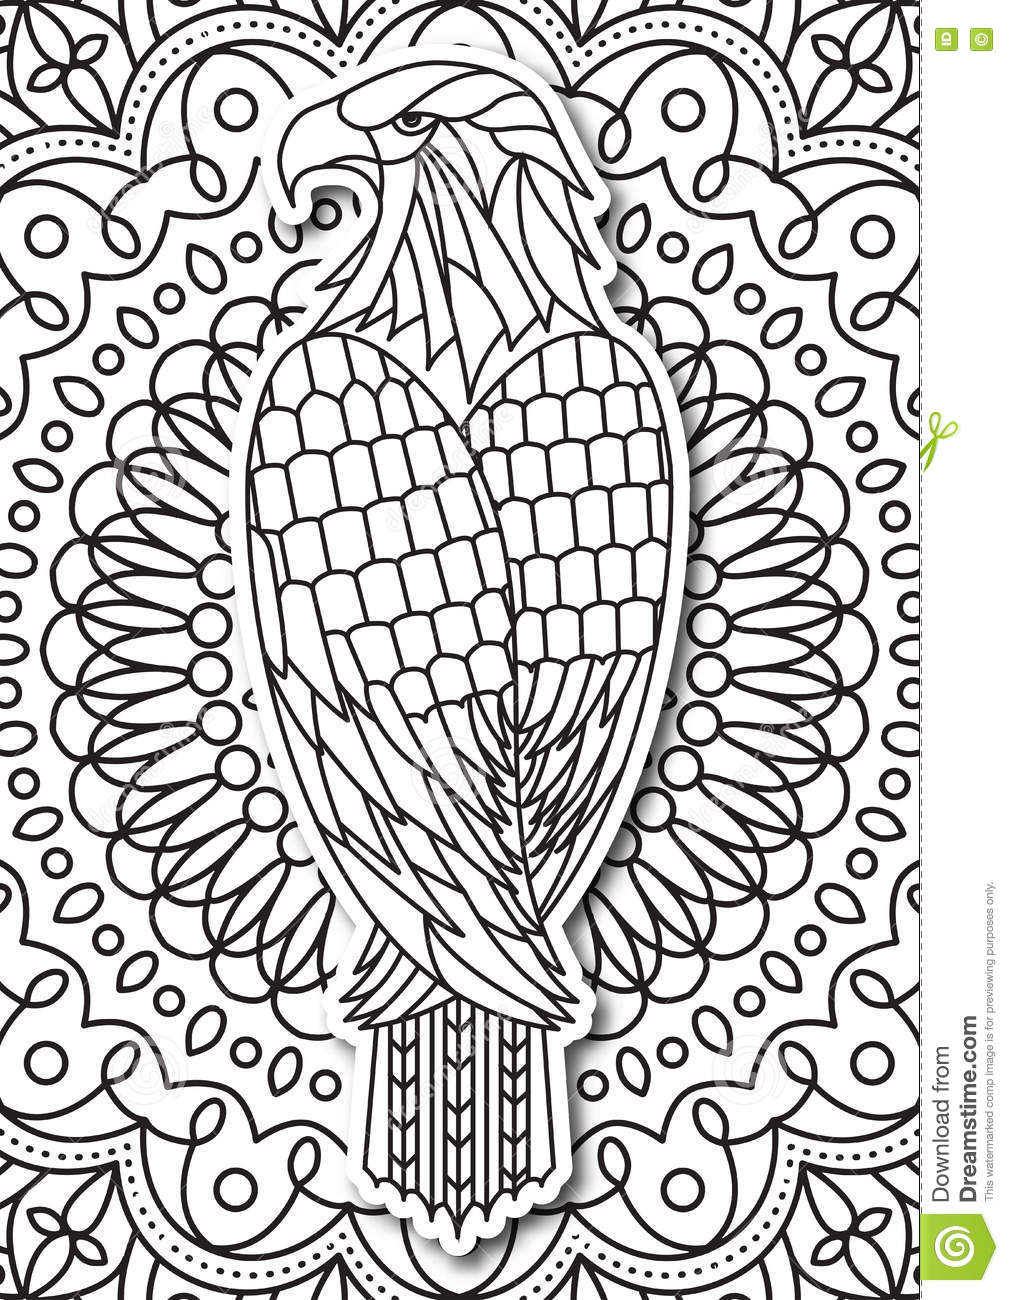 eagle coloring page for adults in ethnic style vector hand